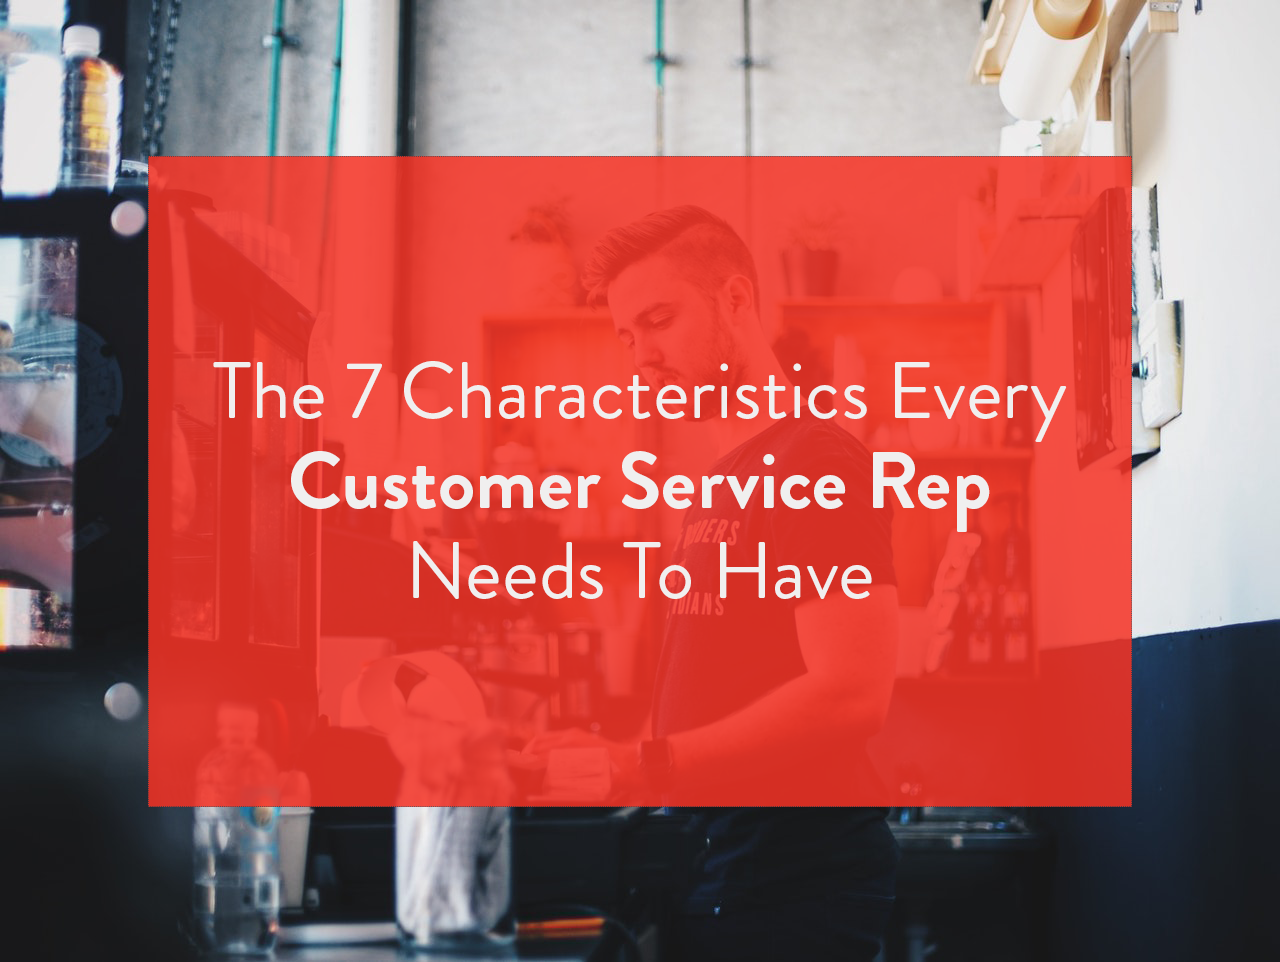 5 Skills Every Customer Service Rep Must Have